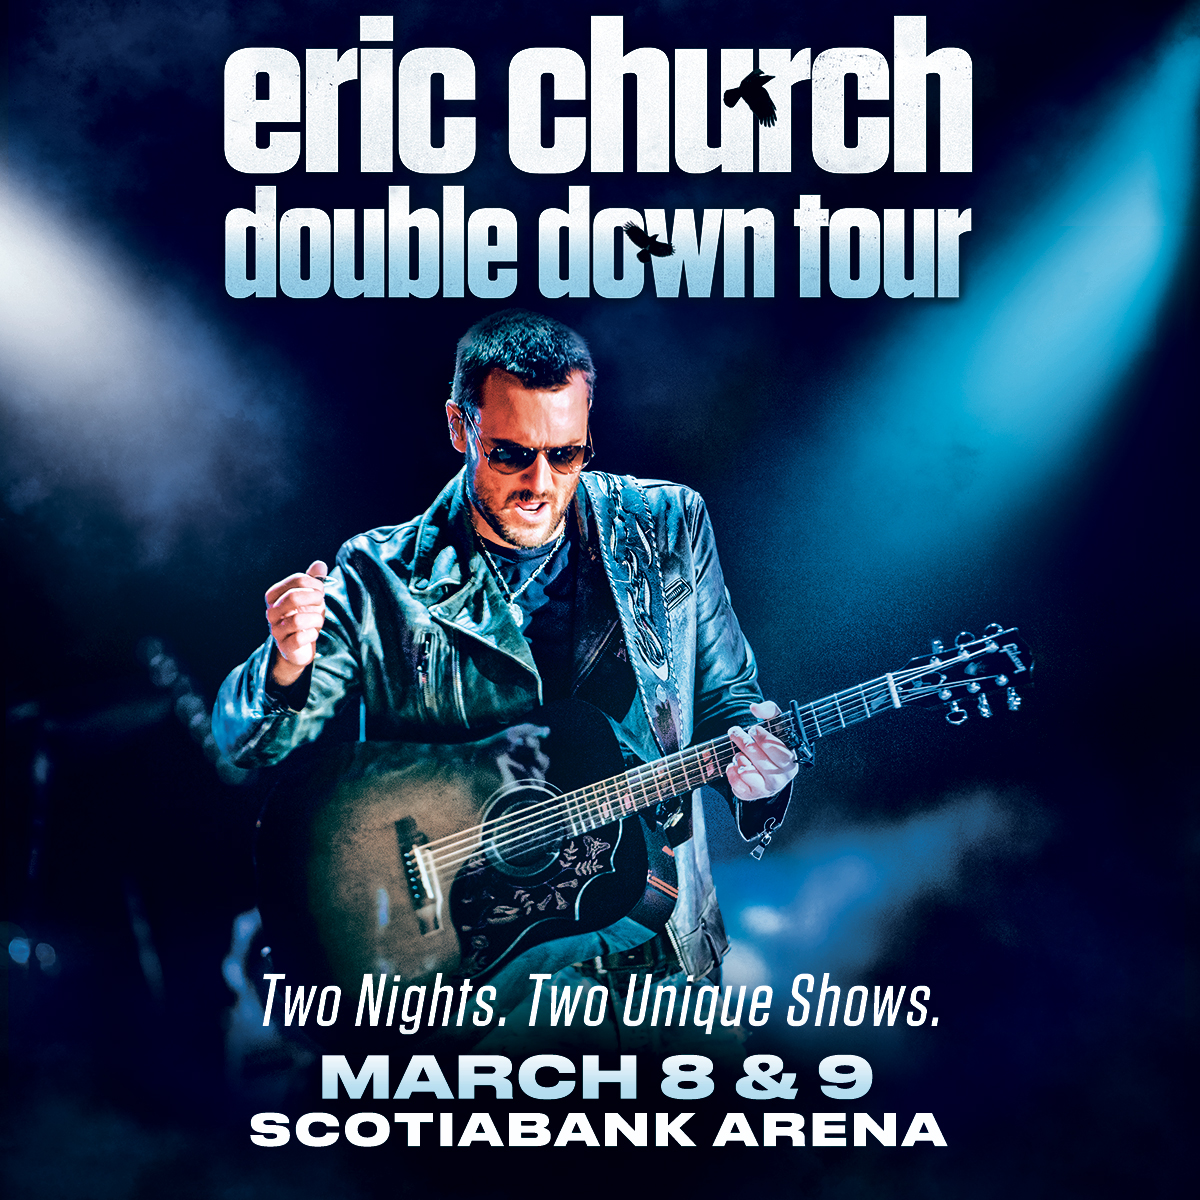 Eric Church And You!